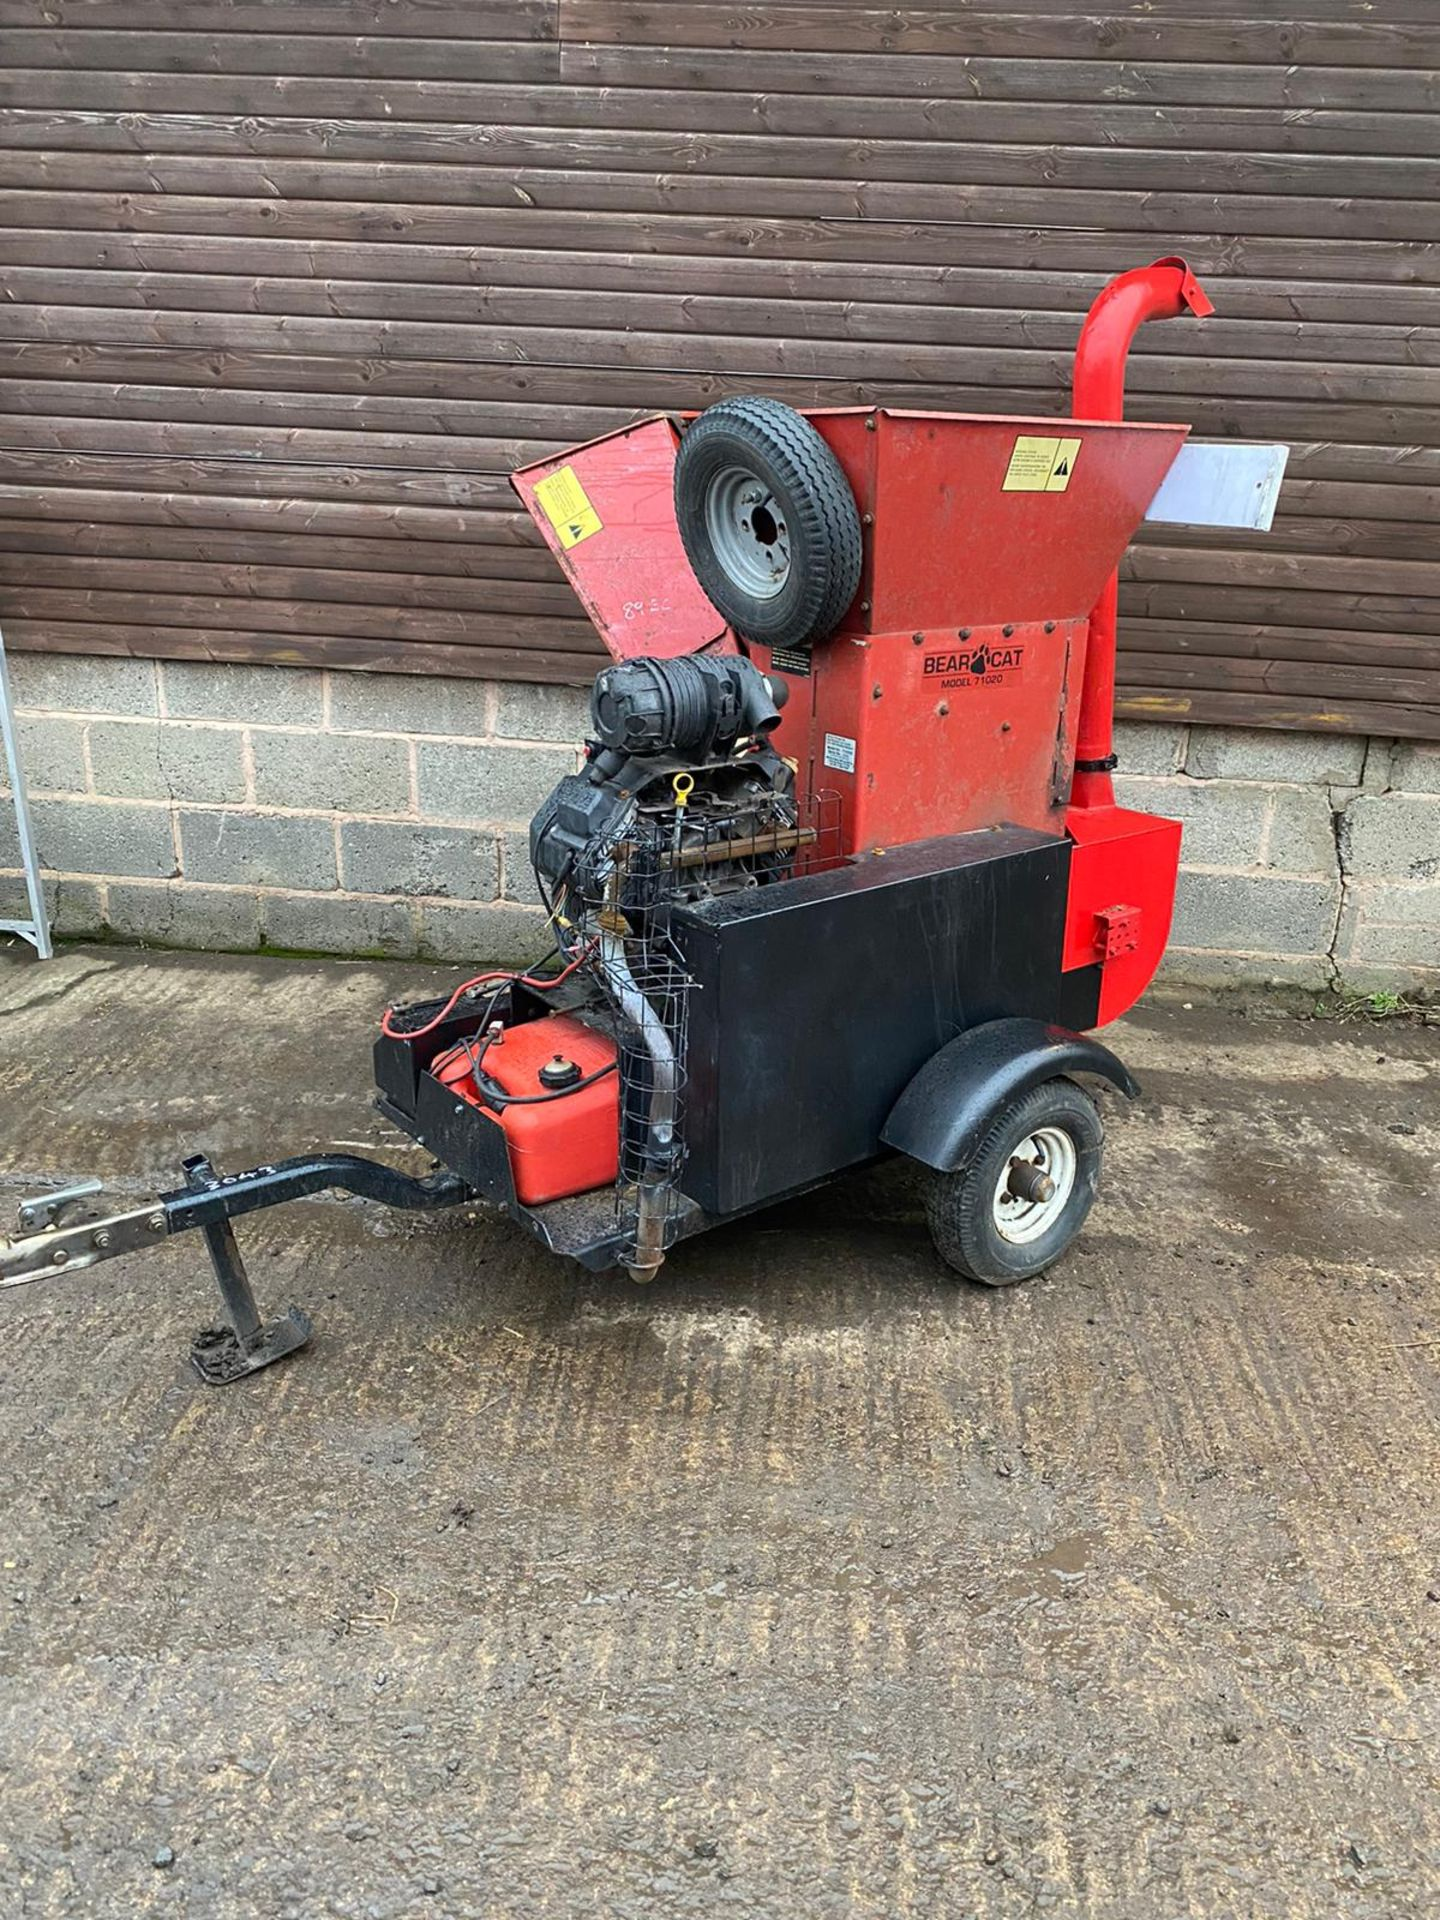 BEARCAT 71020 TOWABLE WOOD CHIPPER, KEY START 27HP PETROL ENGINE, ROAD TOWABLE *PLUS VAT* - Image 5 of 6